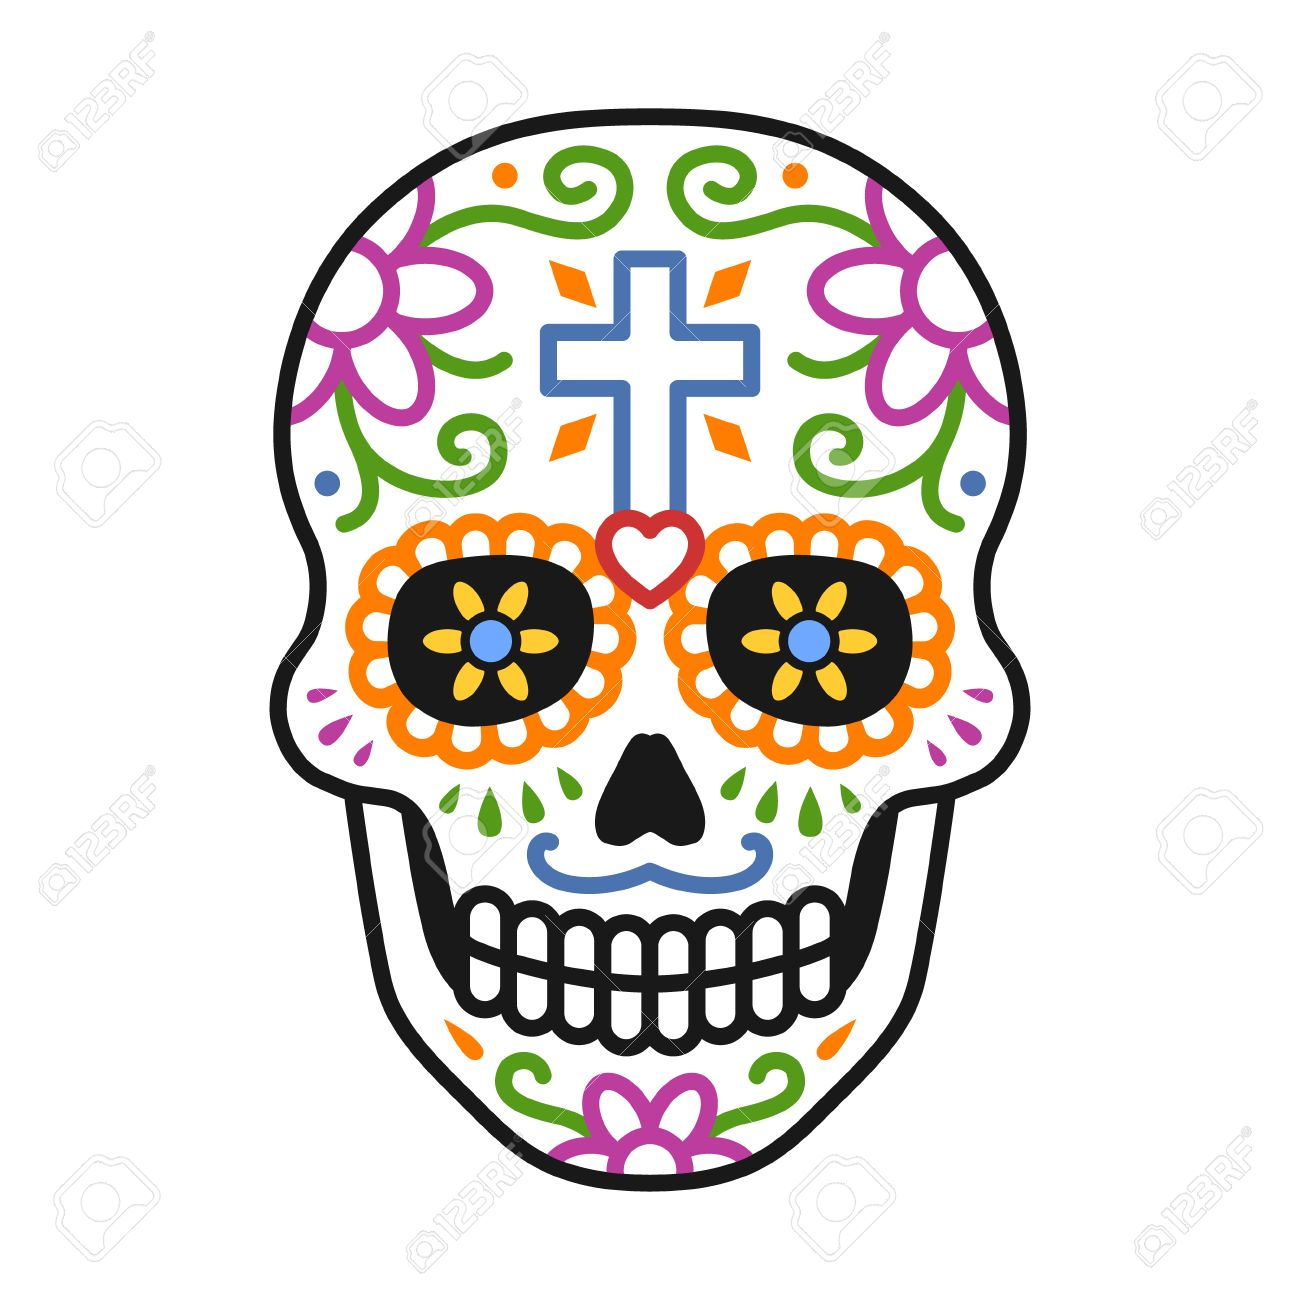 hight resolution of decorated skull calavera celebrating day of the dead line colorful art icon illustration stock